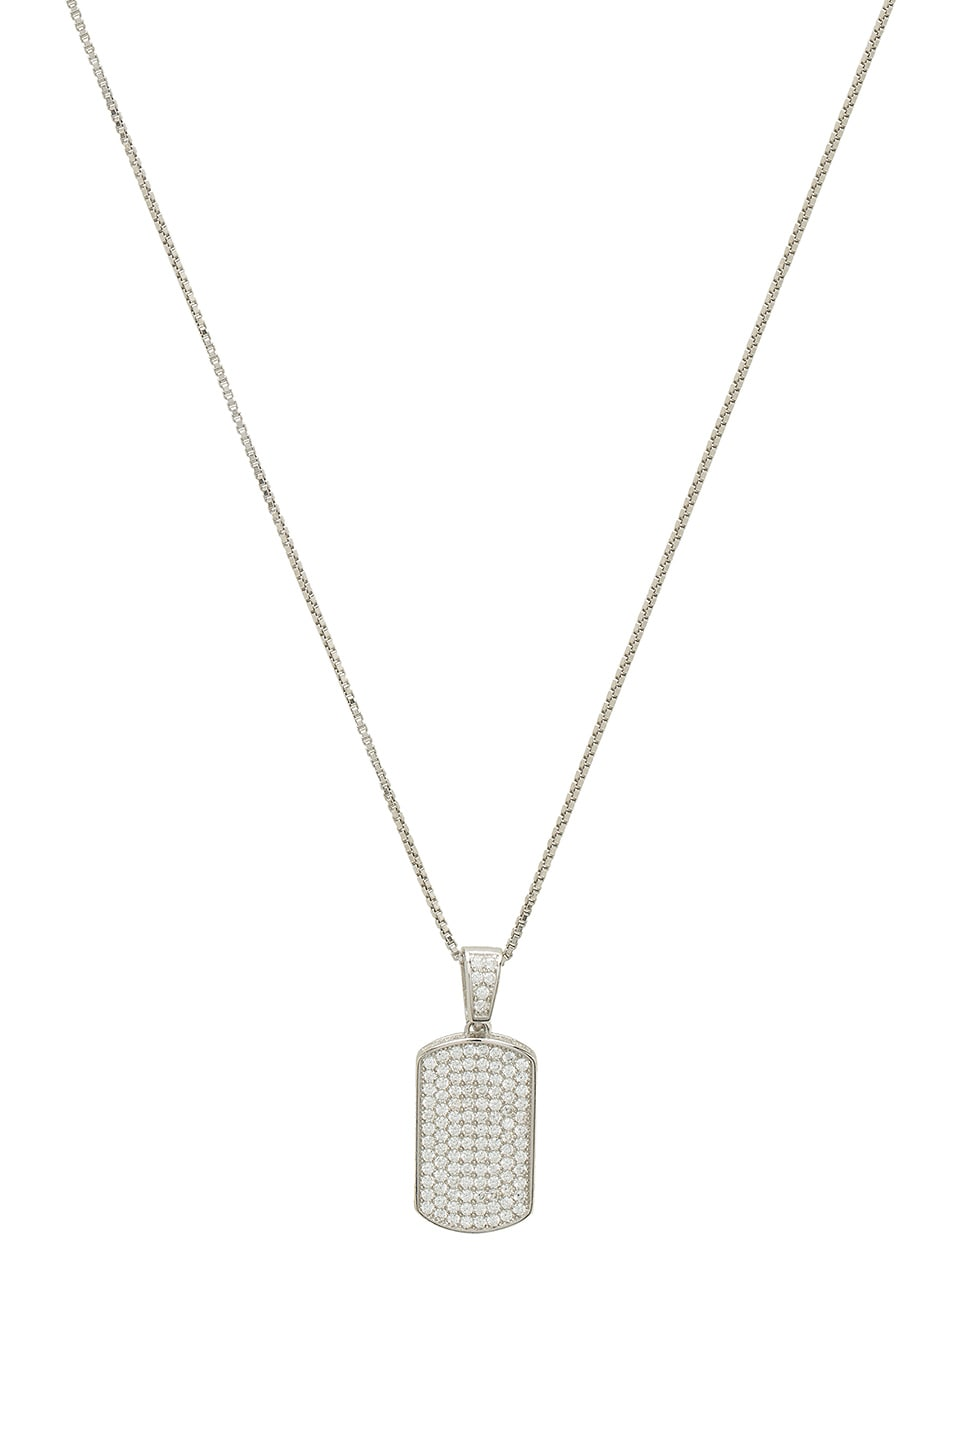 THE M JEWELERS NY THE MINI DOG TAG NECKLACE